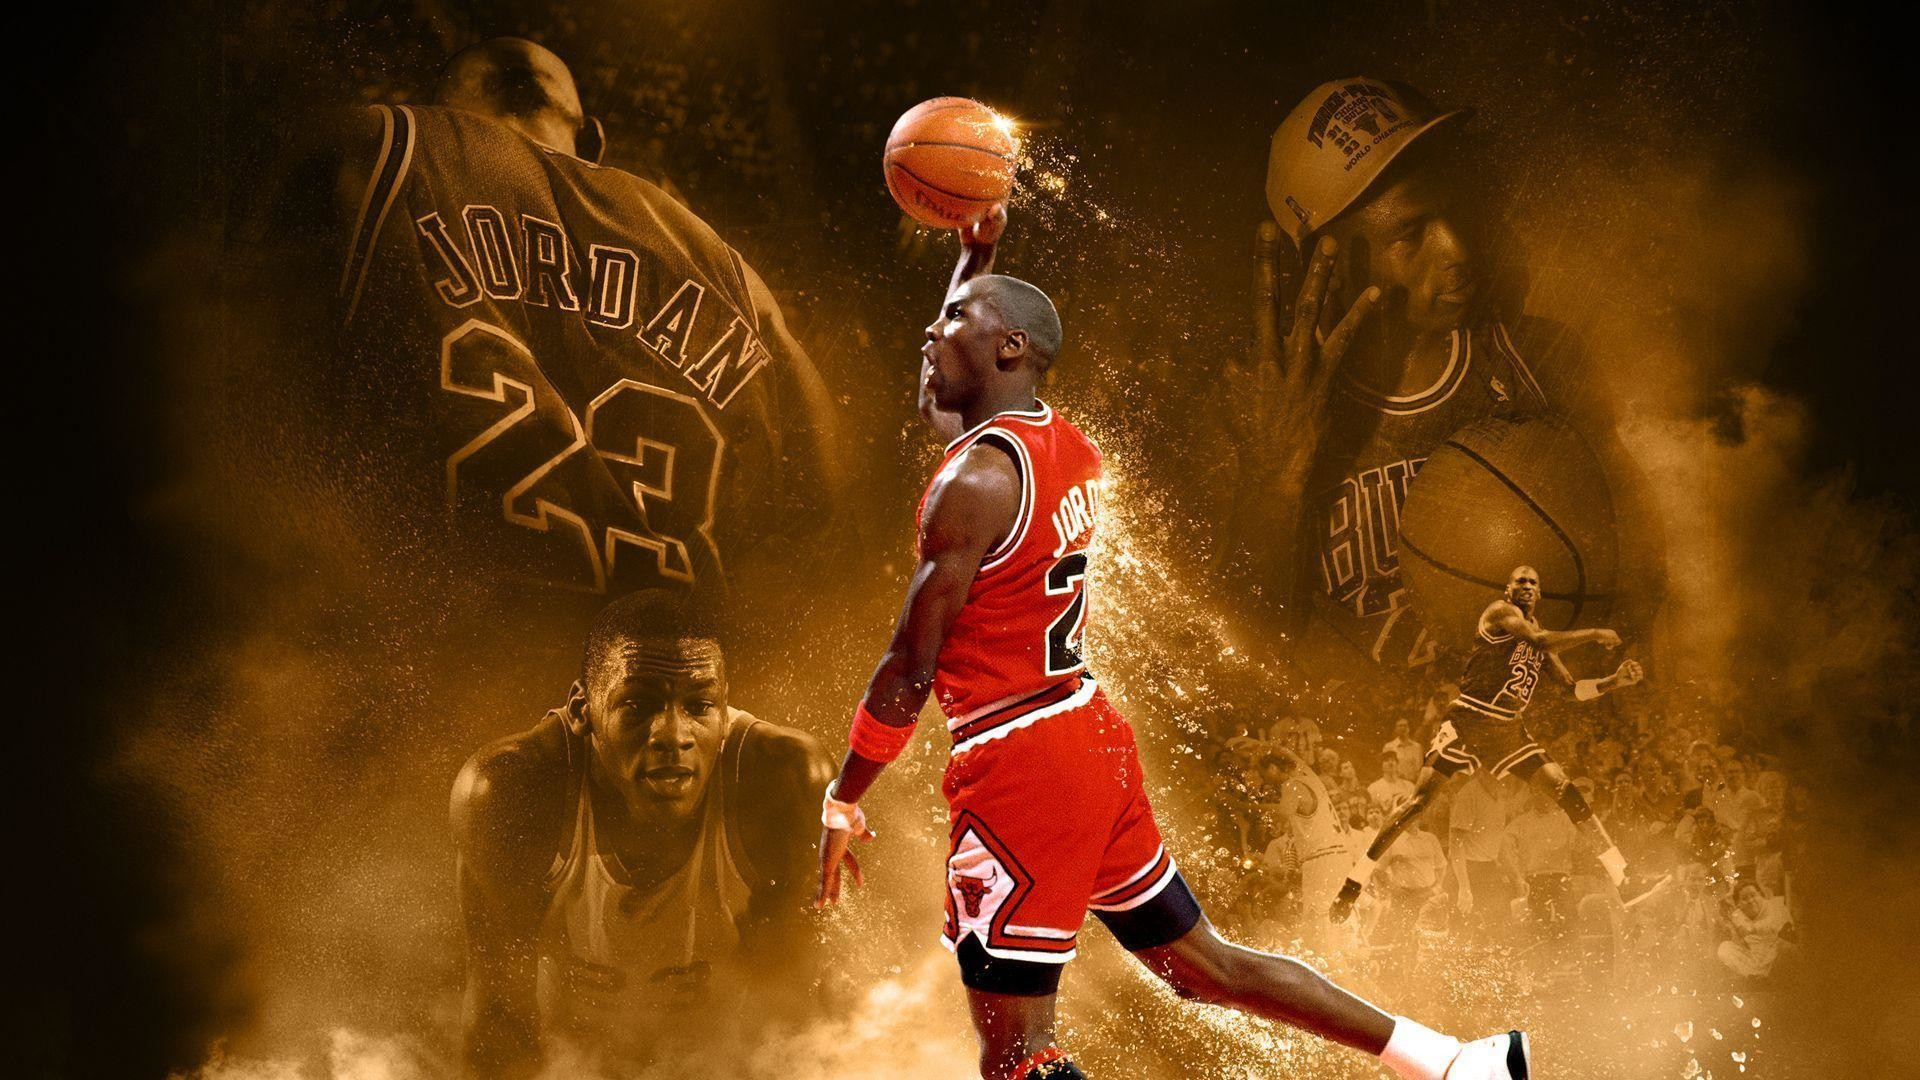 Nba Wallpapers 79 Background Pictures